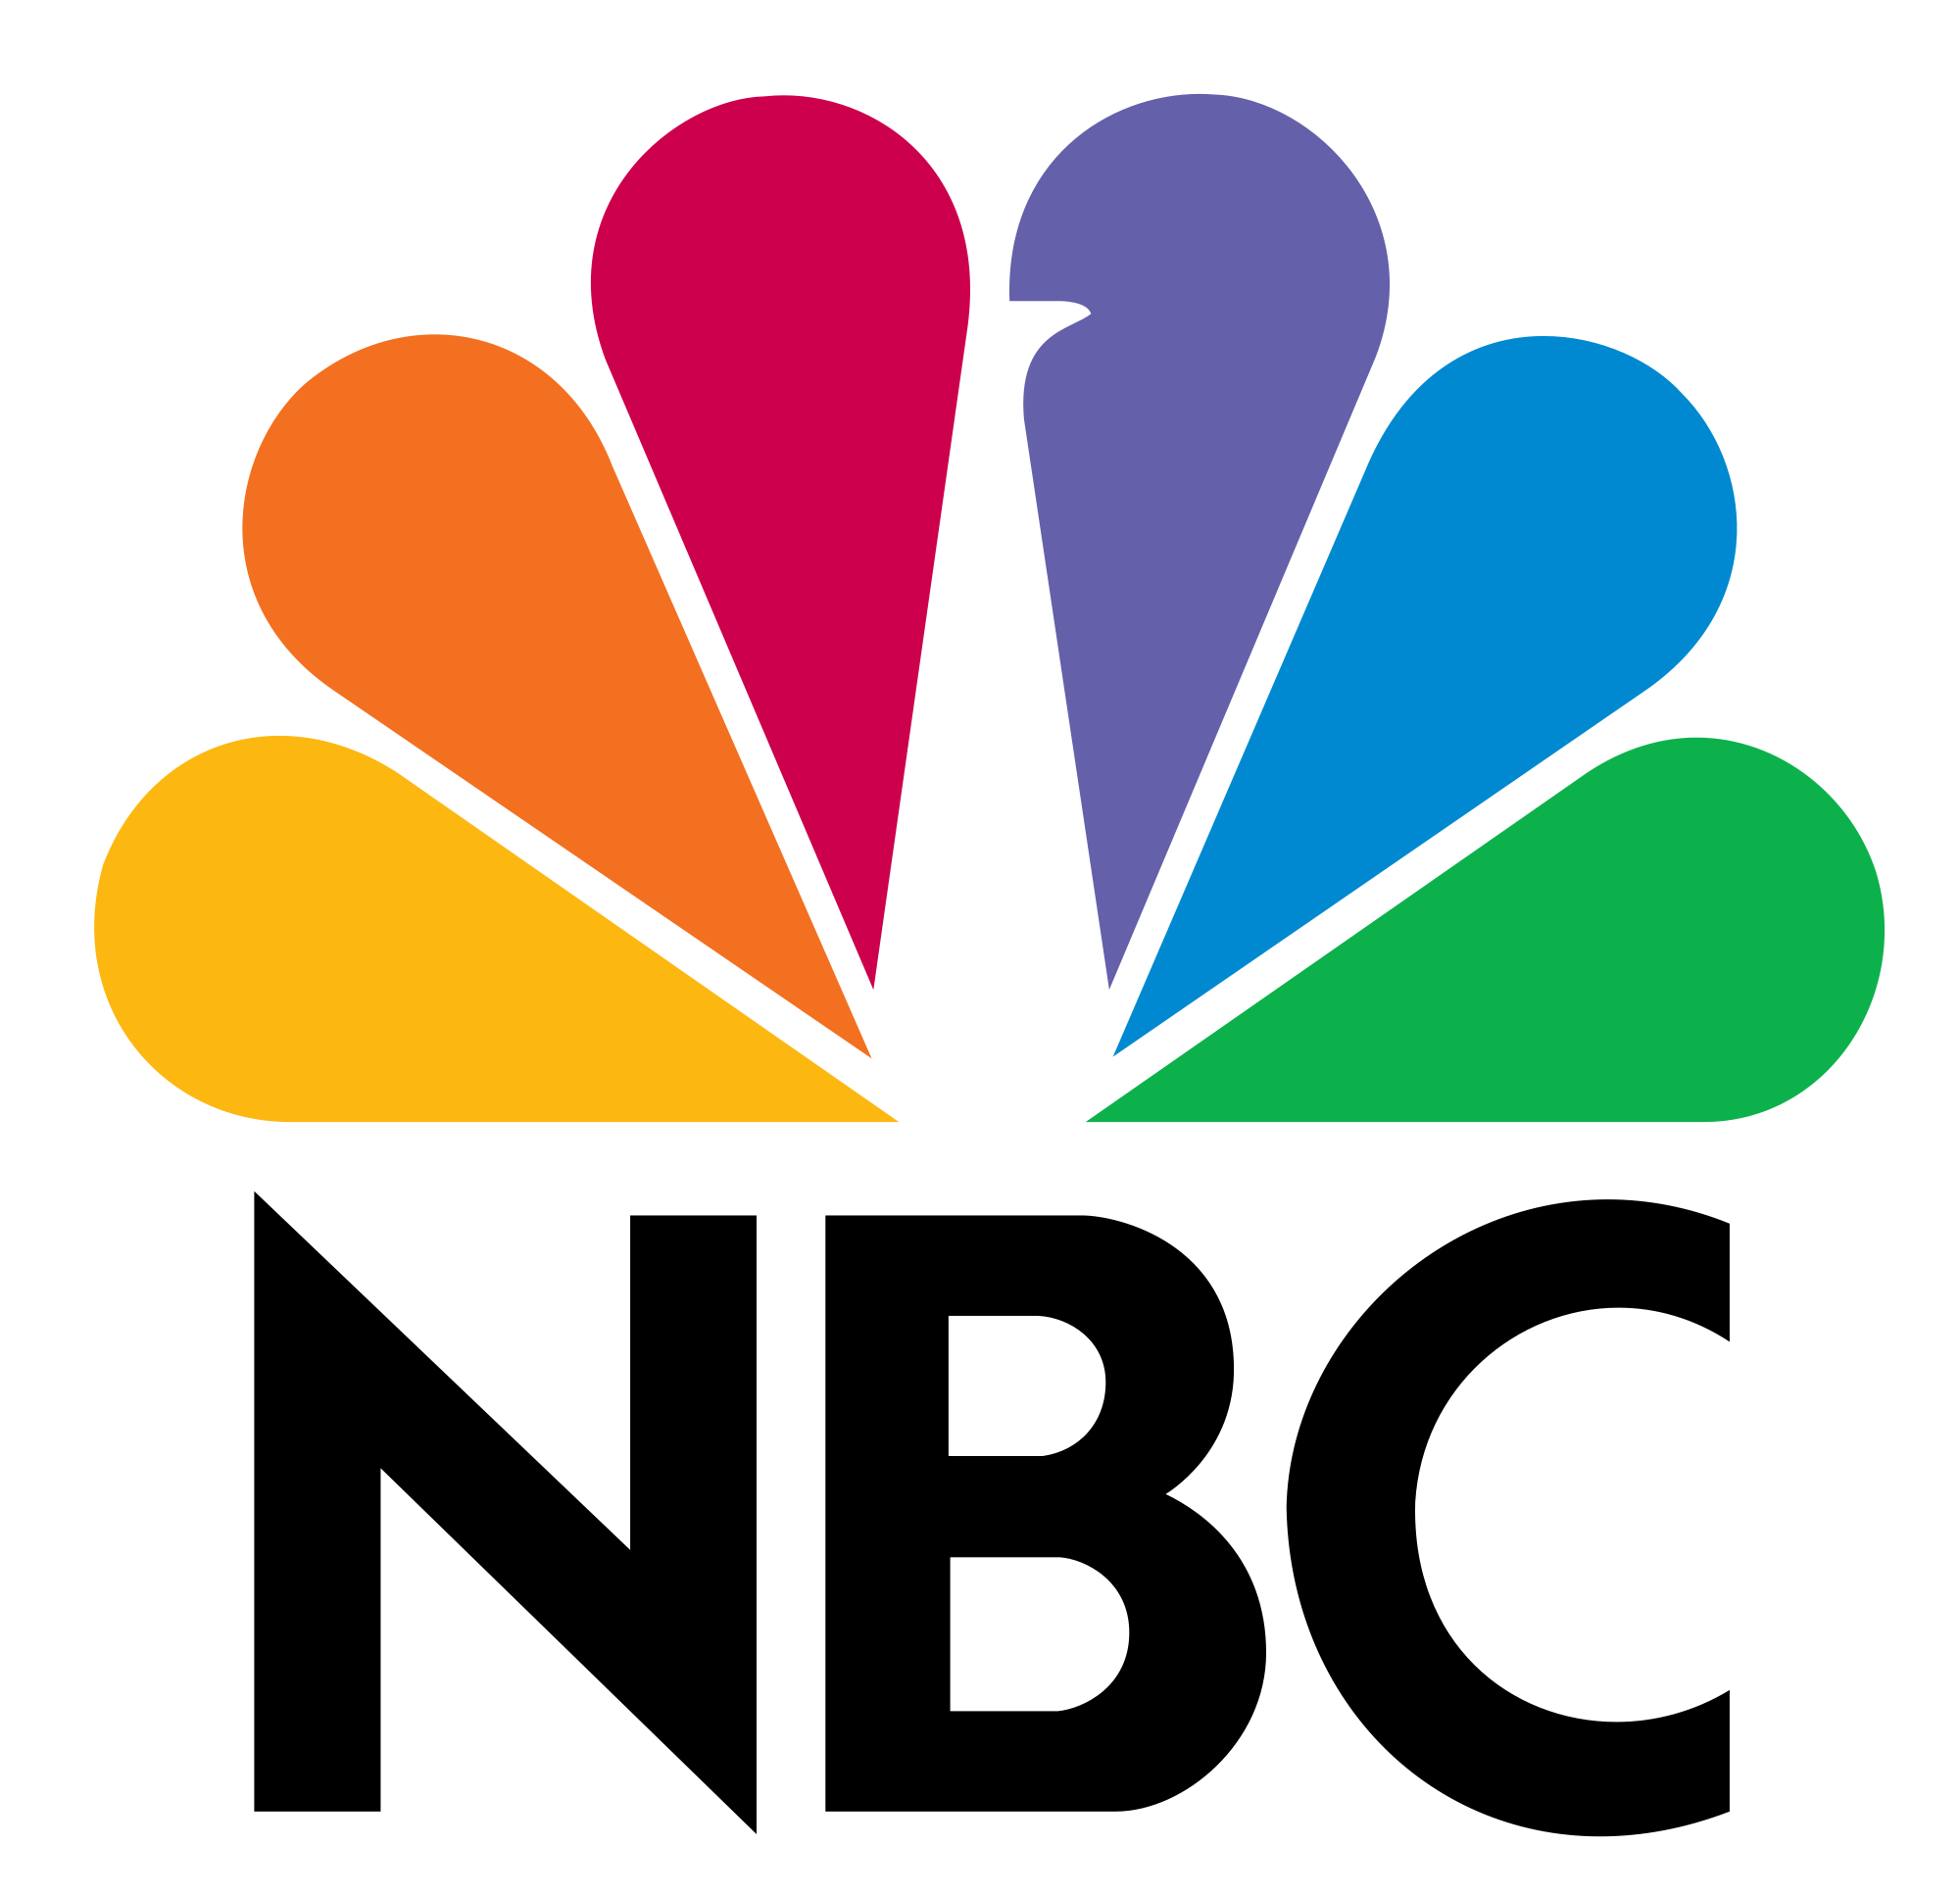 LuLu massagers have been featured on NBC